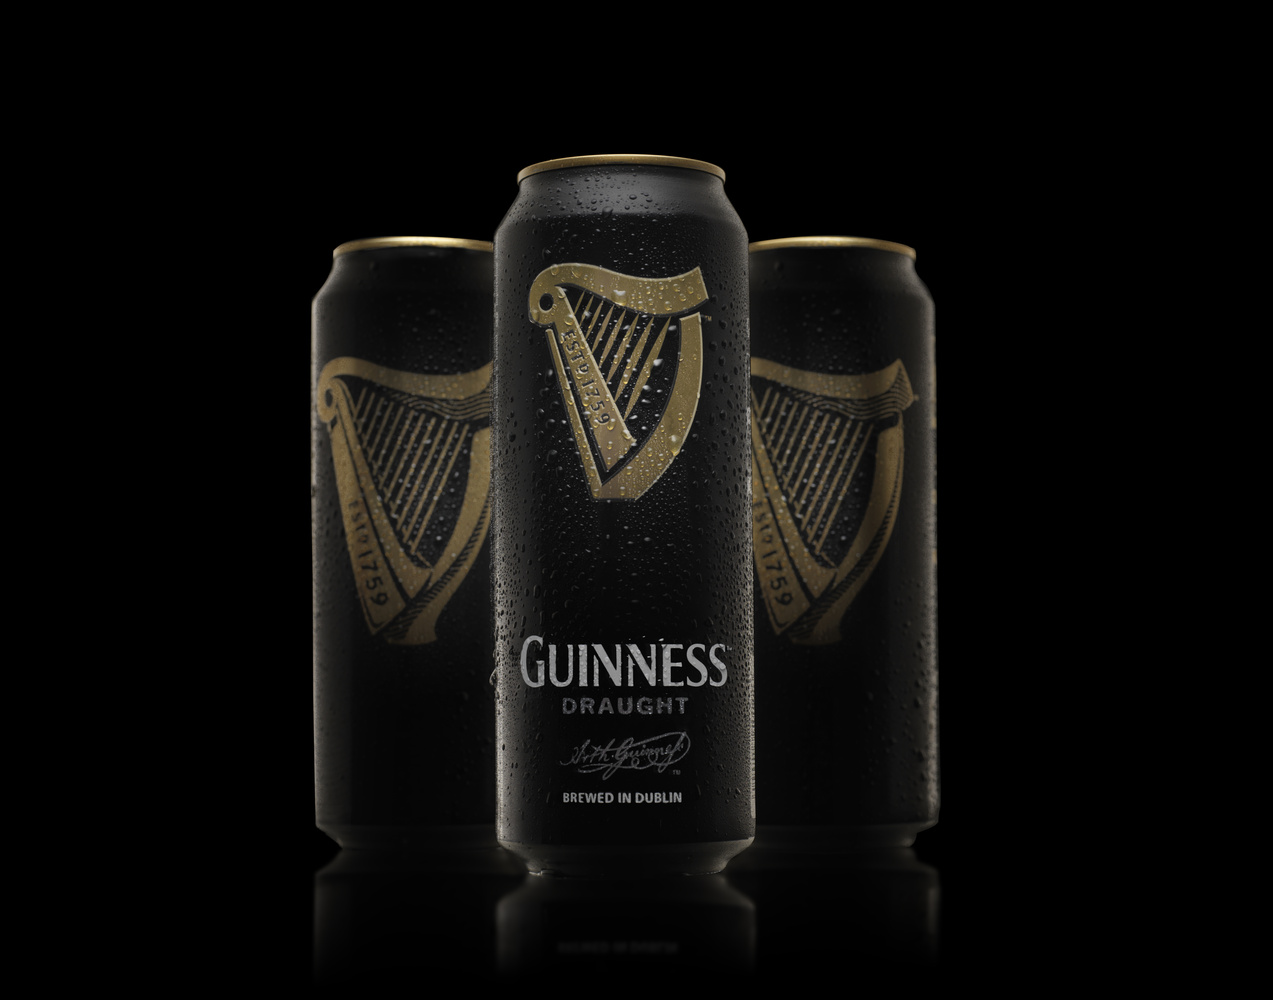 Guiness Trilogy by Loic Mathys